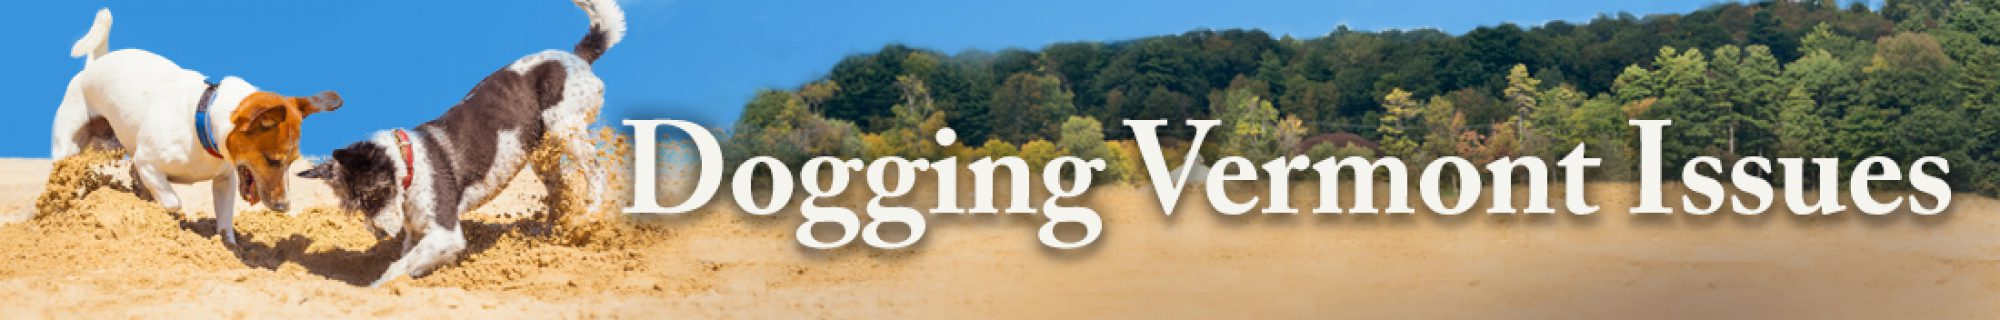 Dogging Vermont Issues